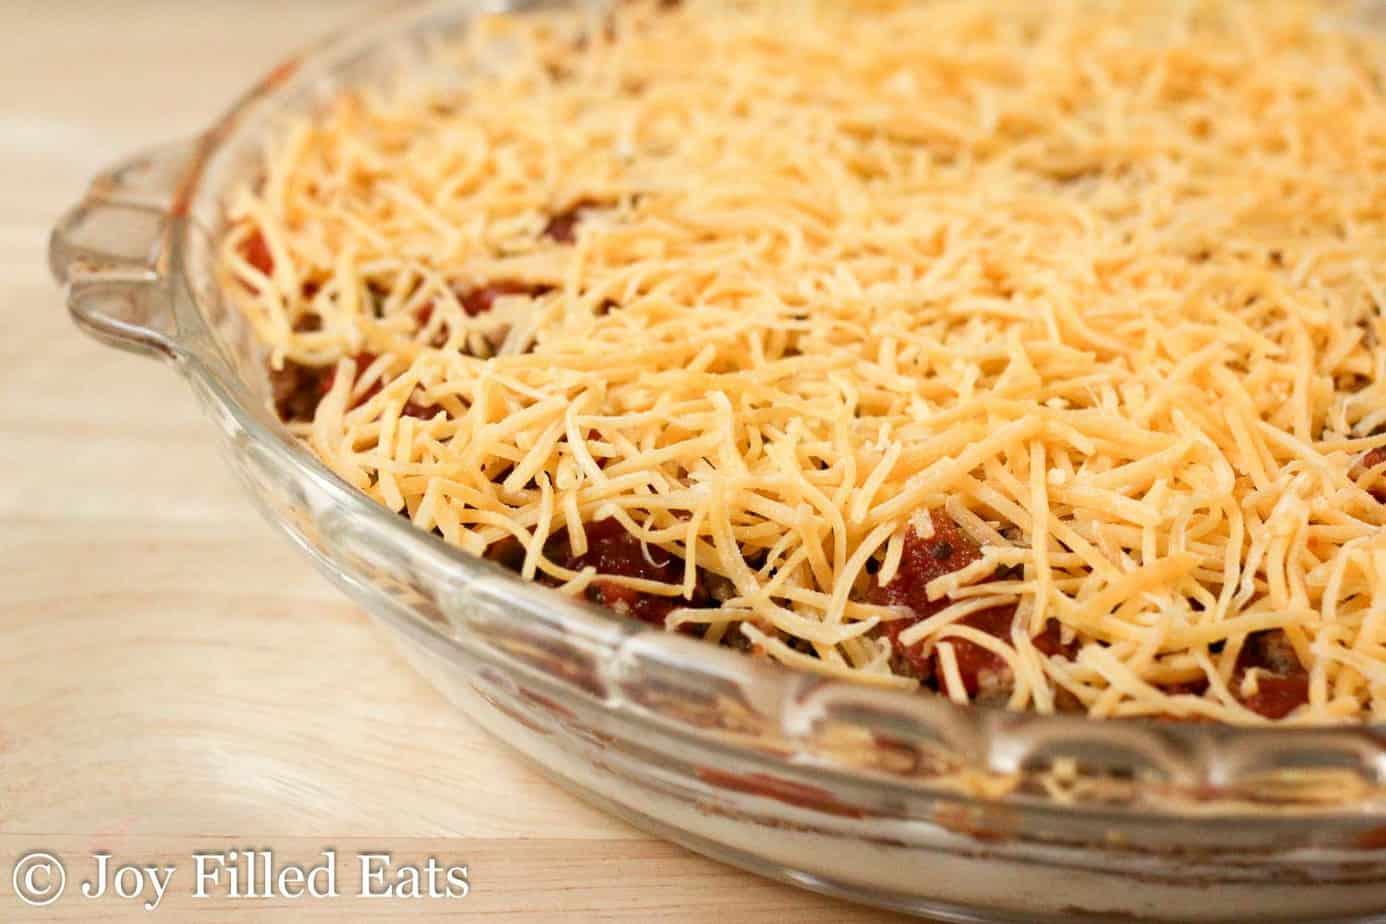 Easy Taco Dip With Meat Low Carb Keto Thm S Joy Filled Eats